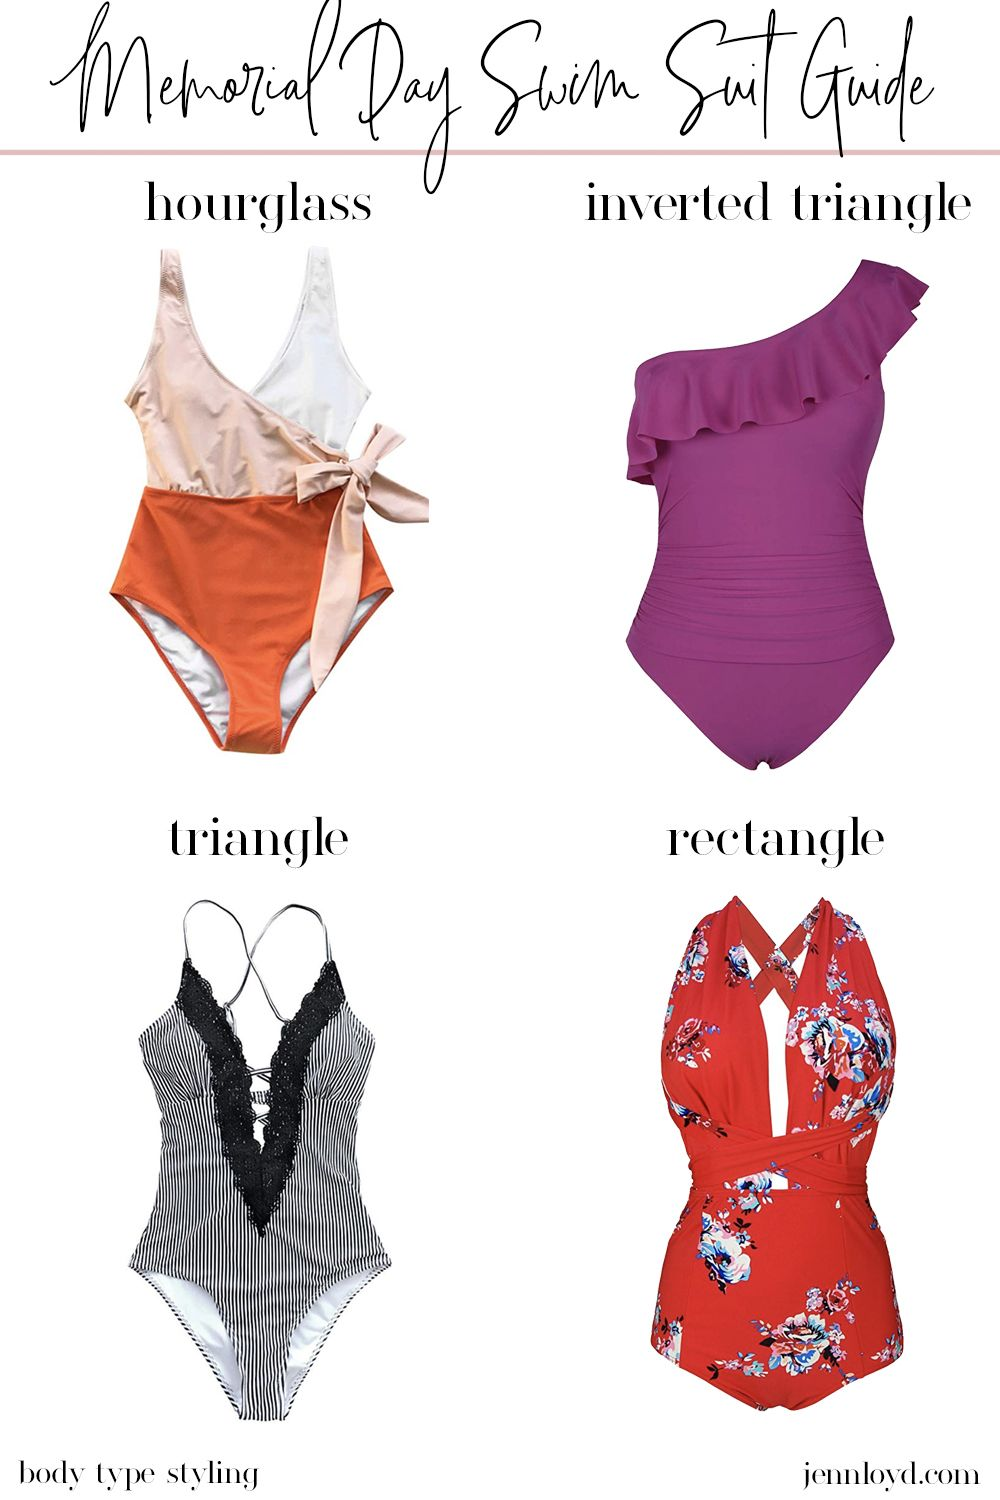 3f6975a992381 Memorial Day Swim Suit Guide | Shop With Style | Fashion, Suit guide ...